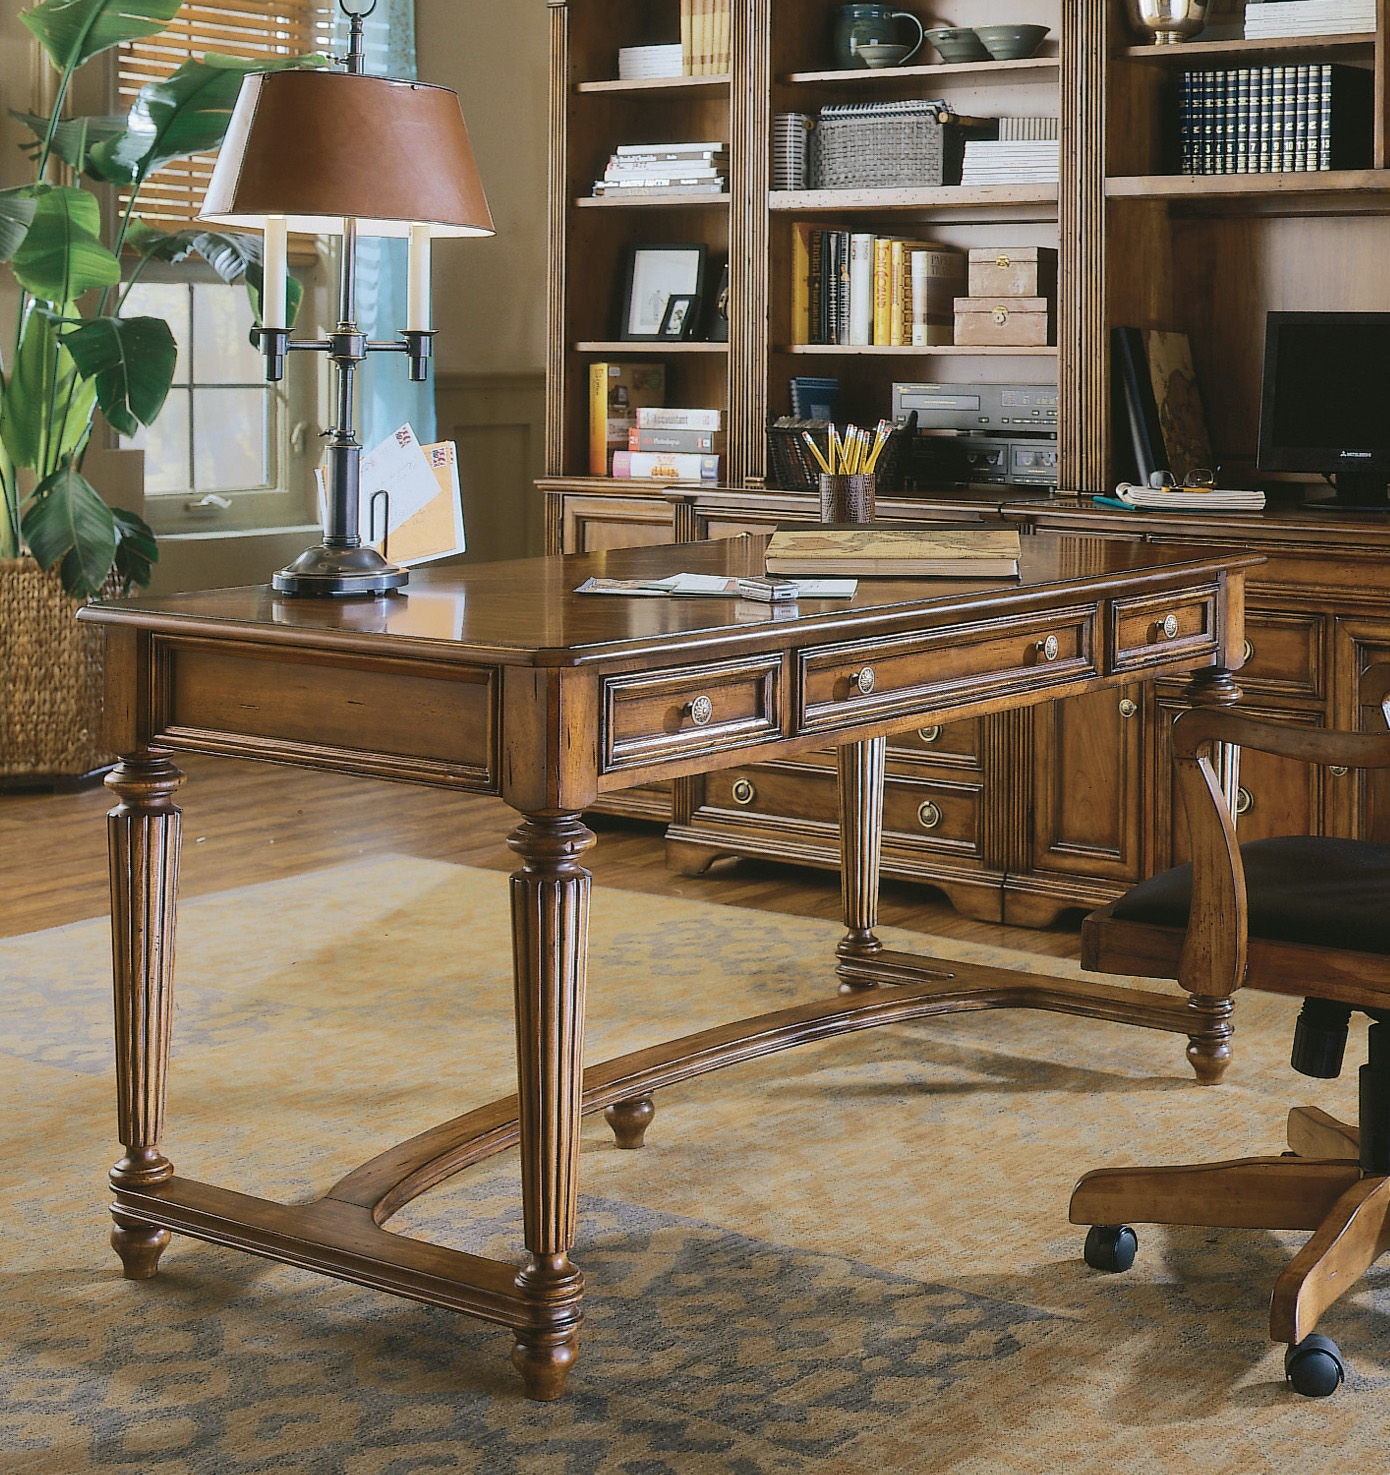 Hooker Furniture Brookhaven Leg Desk 281-10-458